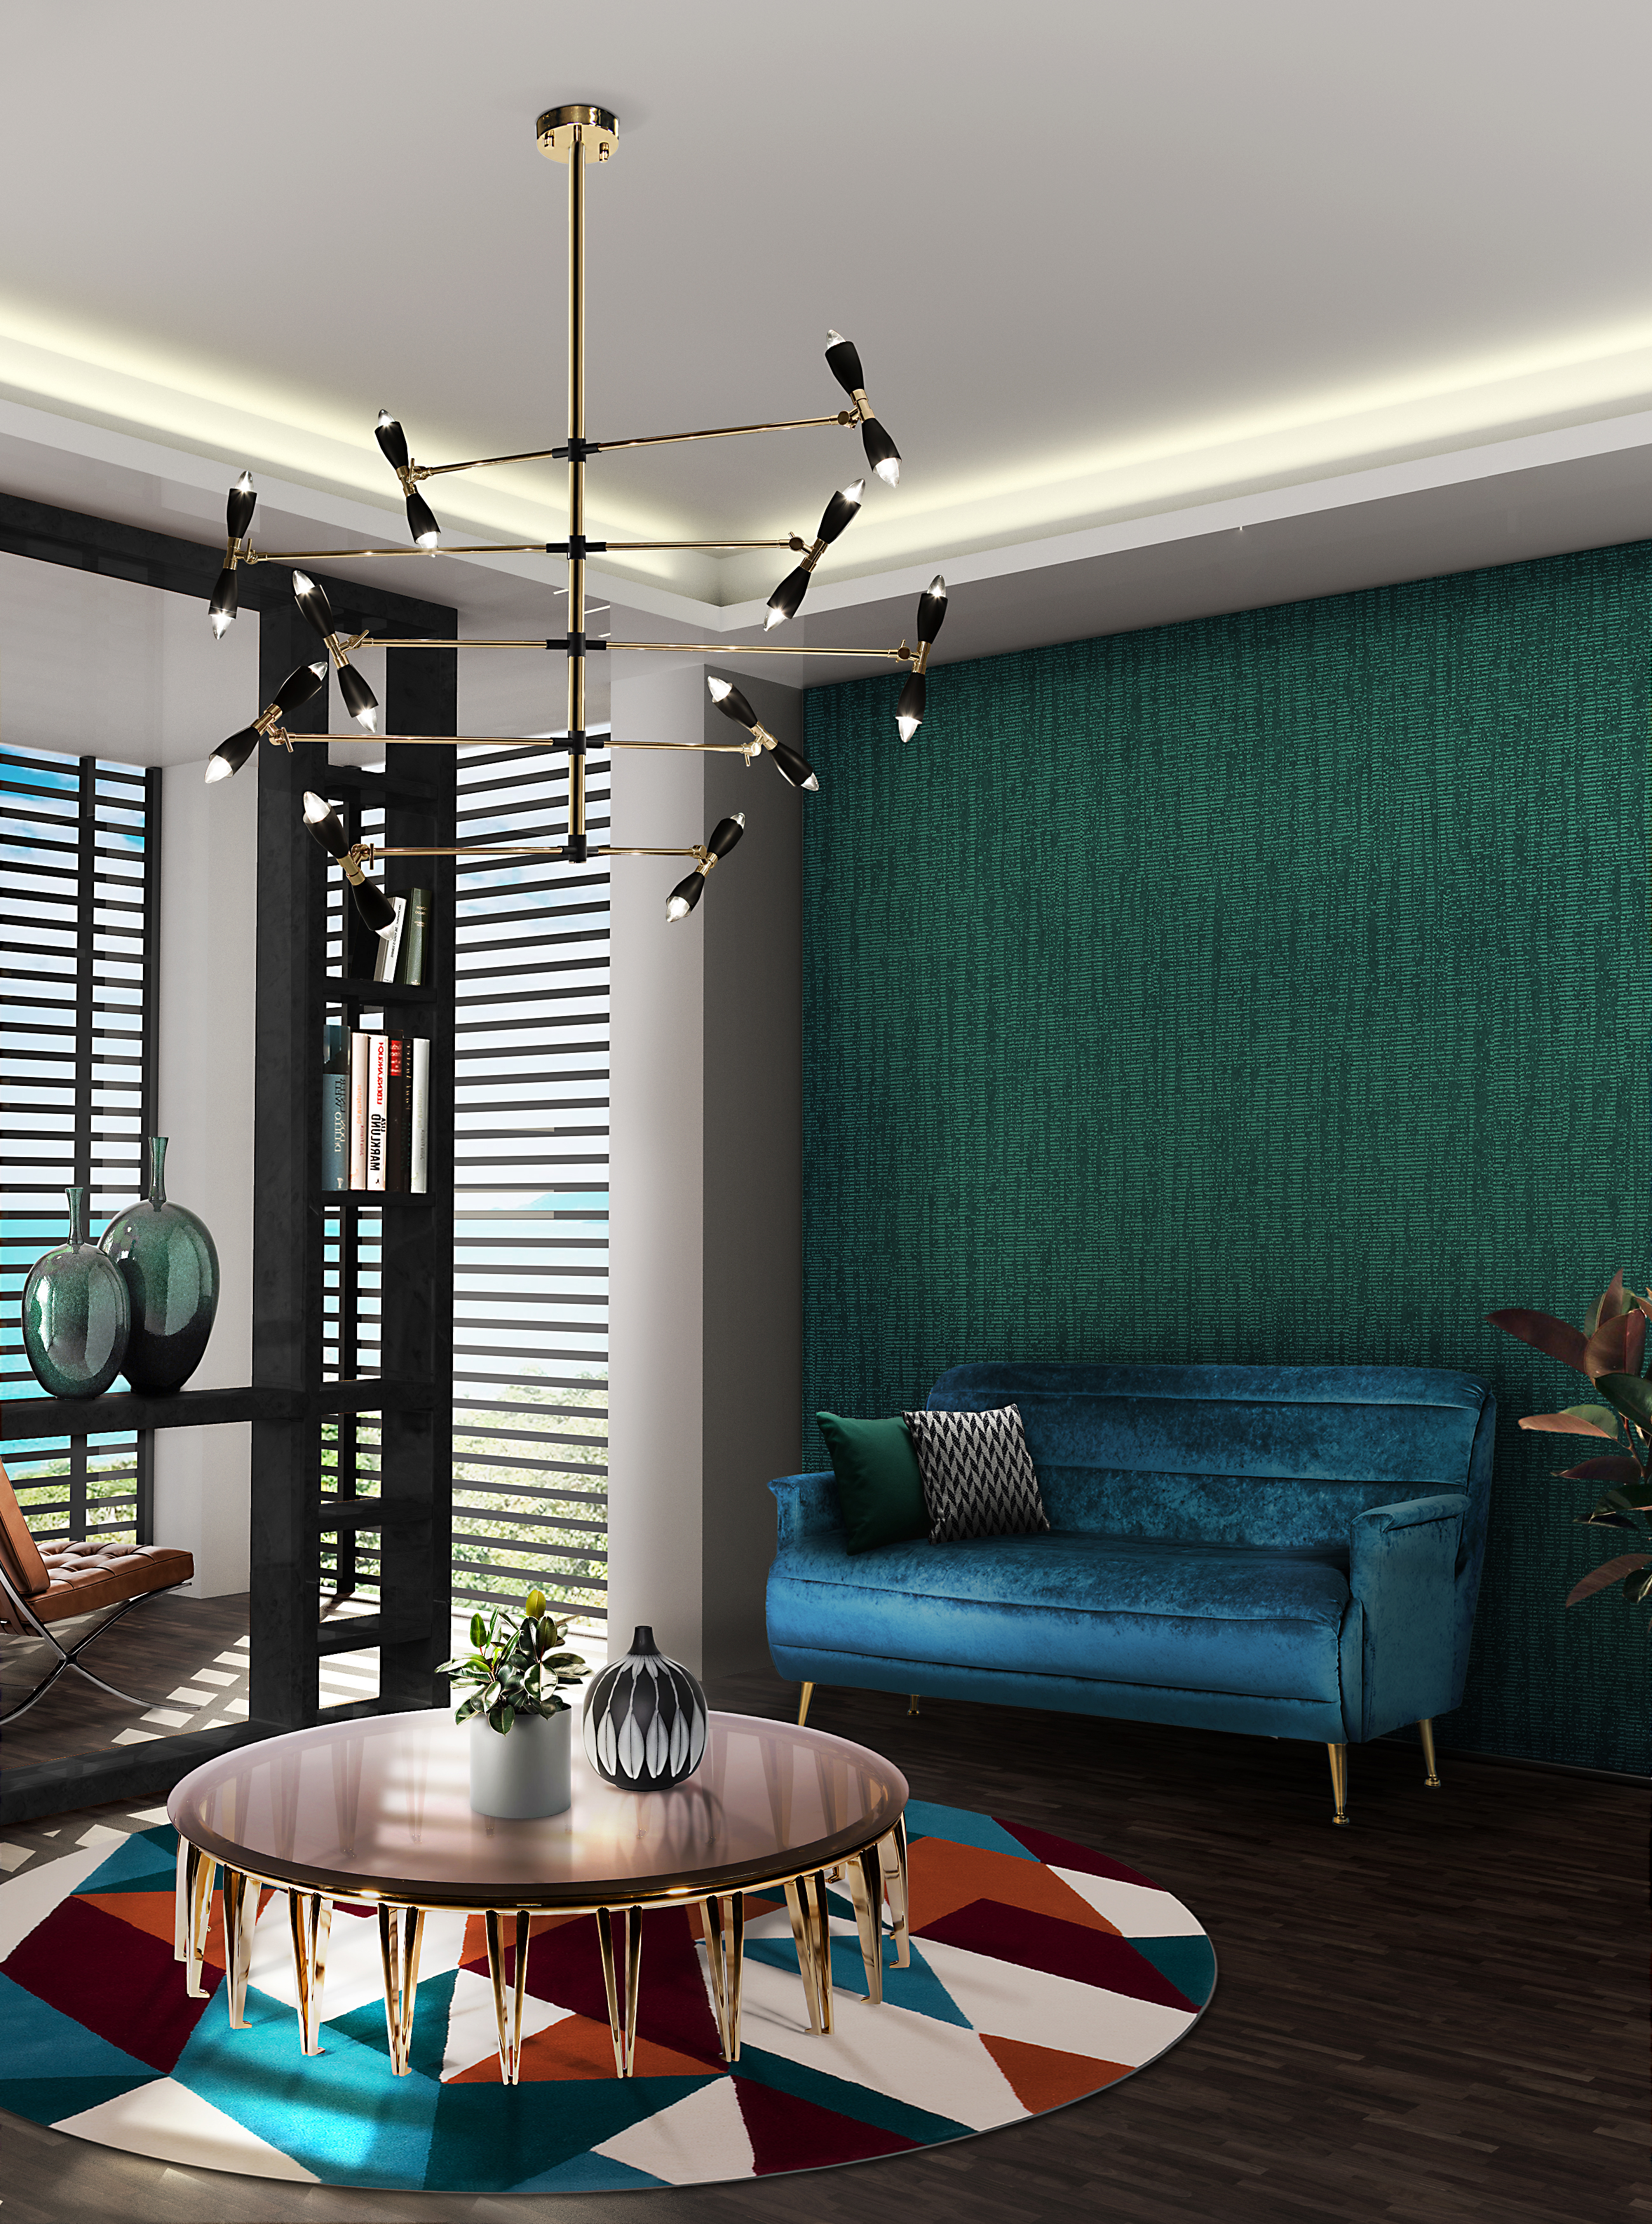 Interior Design Trends 2018 What's In & What's Out! – Inspirations